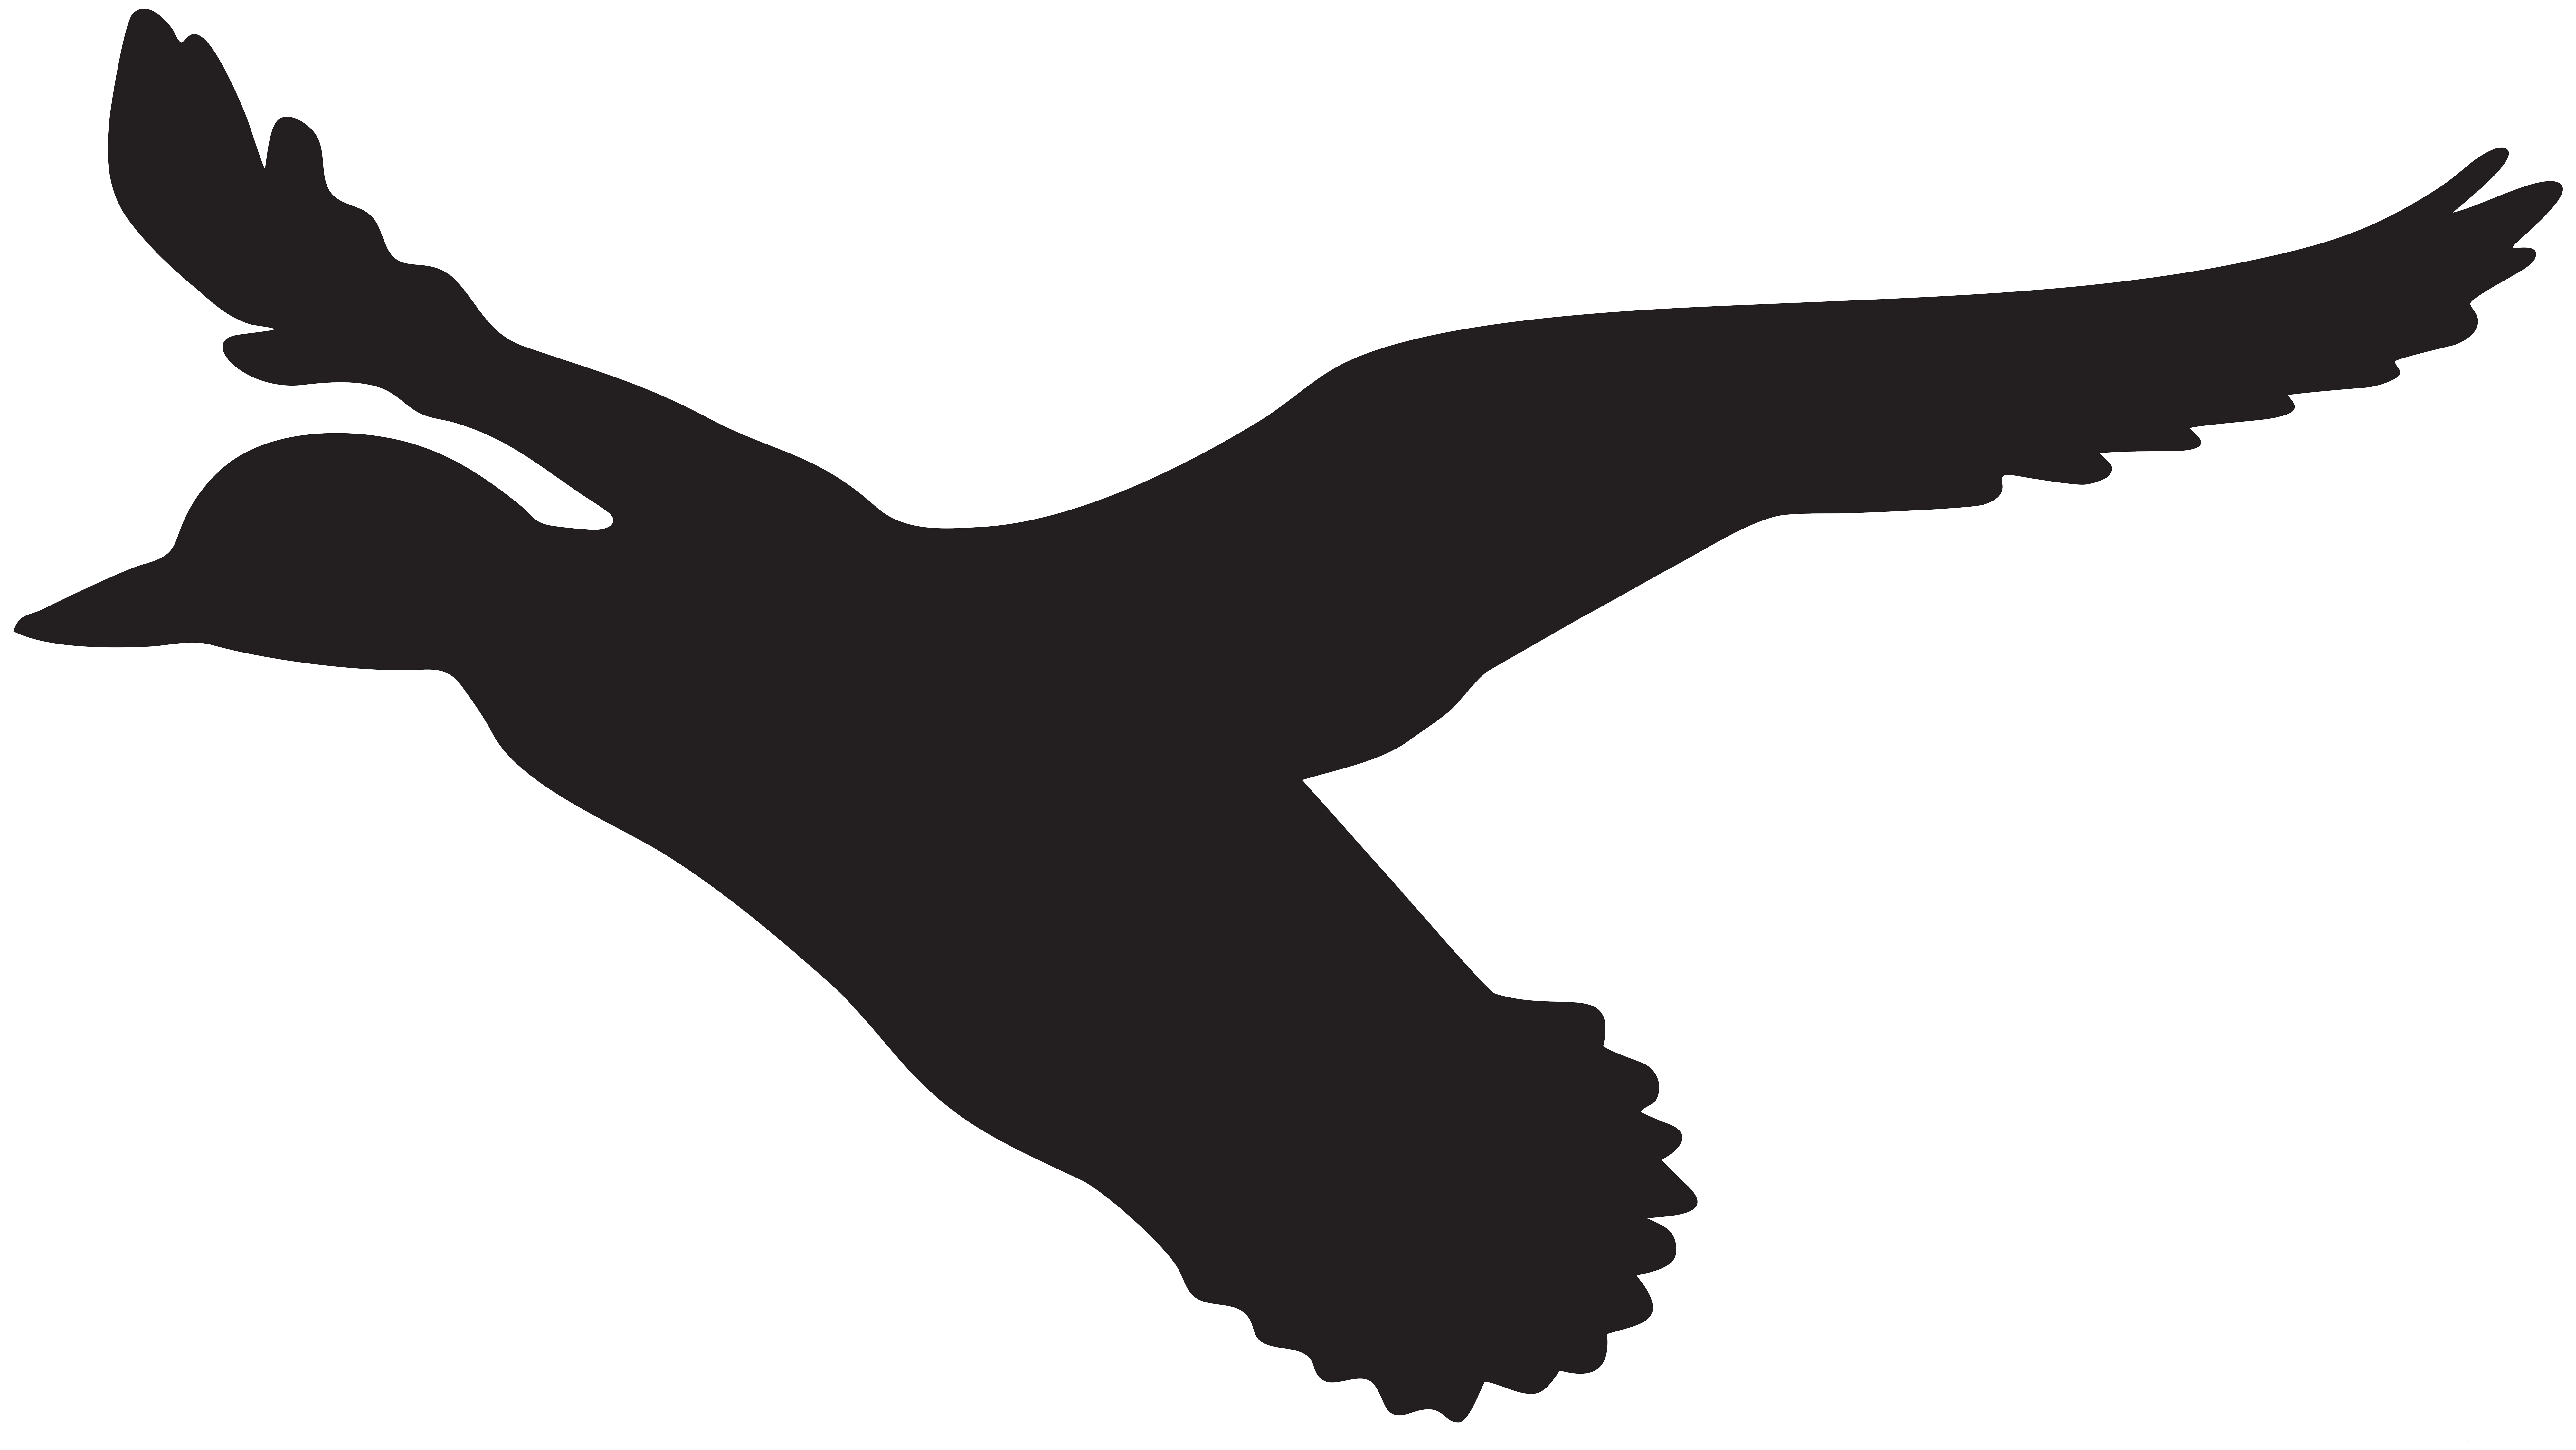 Hunting clipart car decal. Flying duck silhouette png